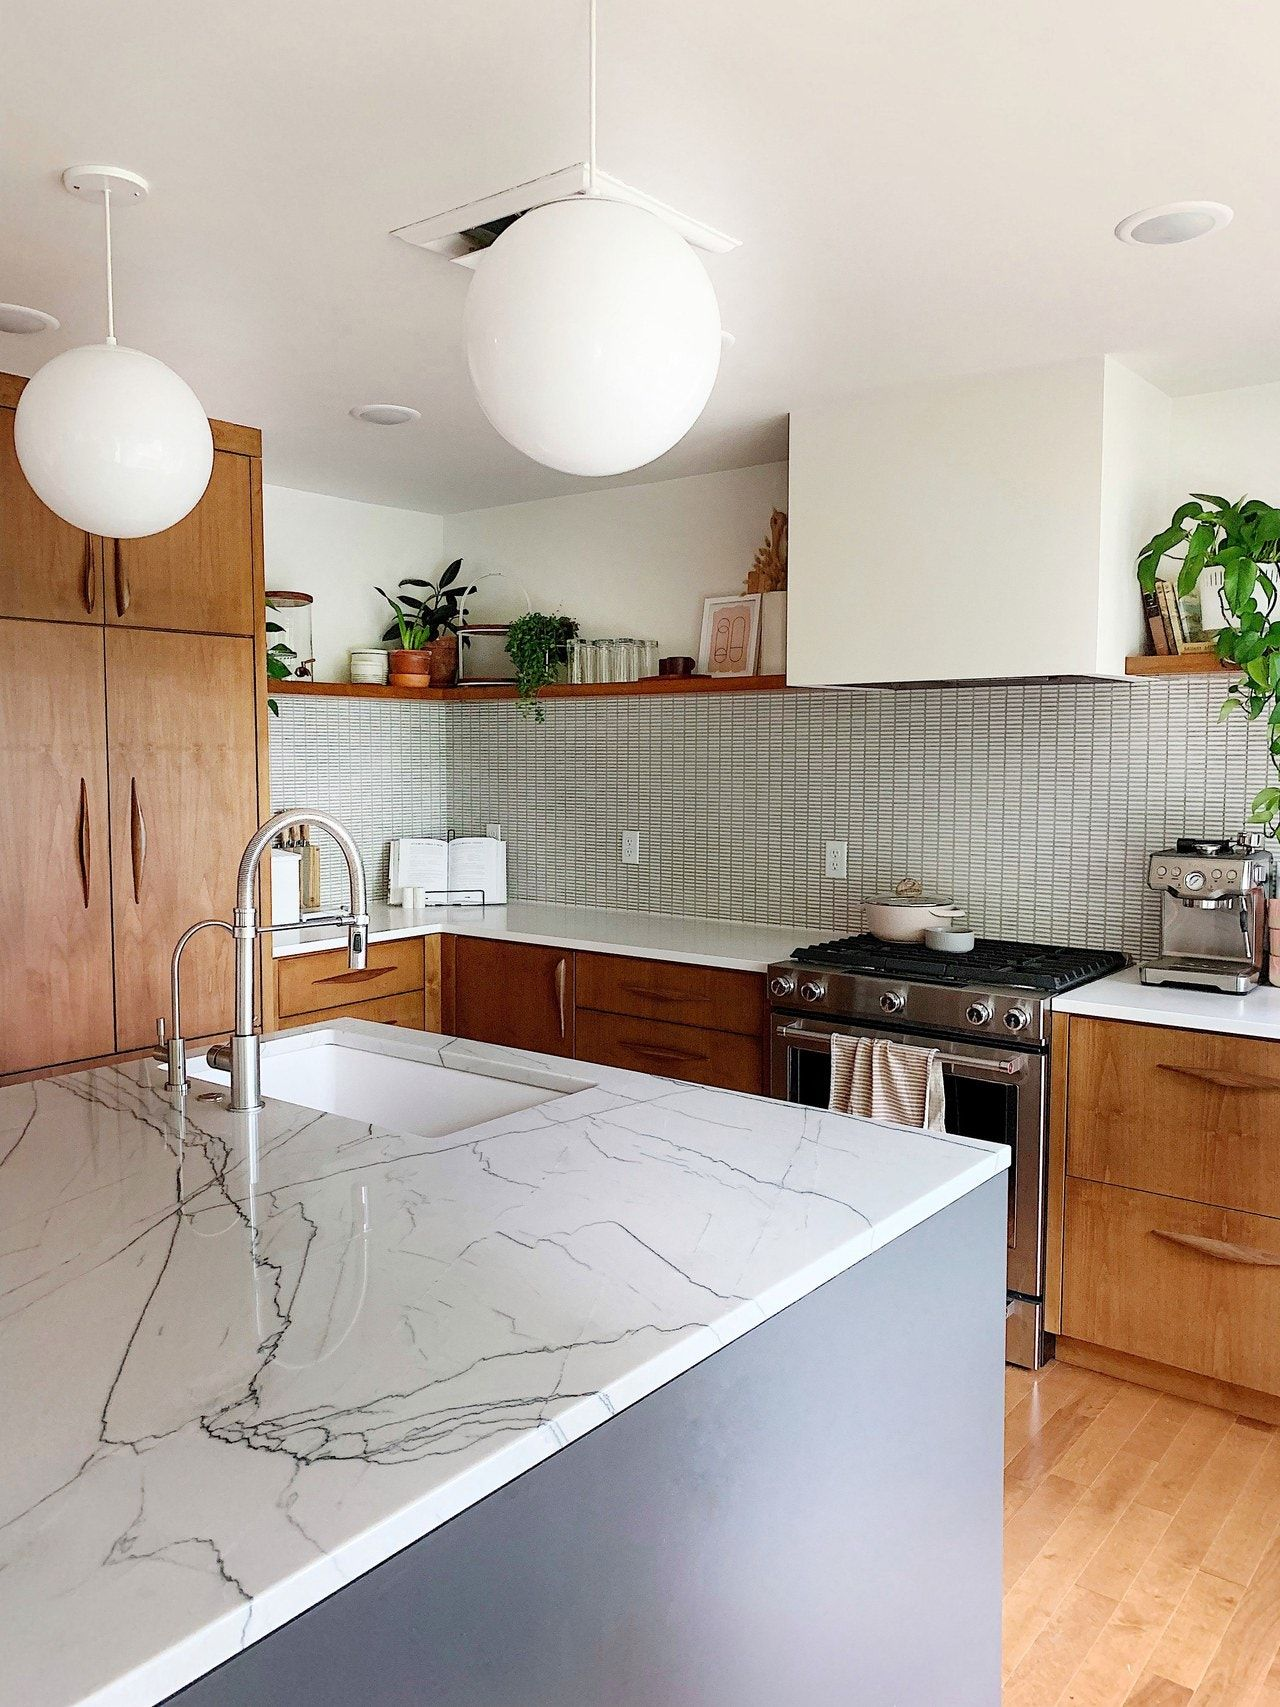 A Lovingly Remodeled Midcentury Modern Kitchen in 2020 ...